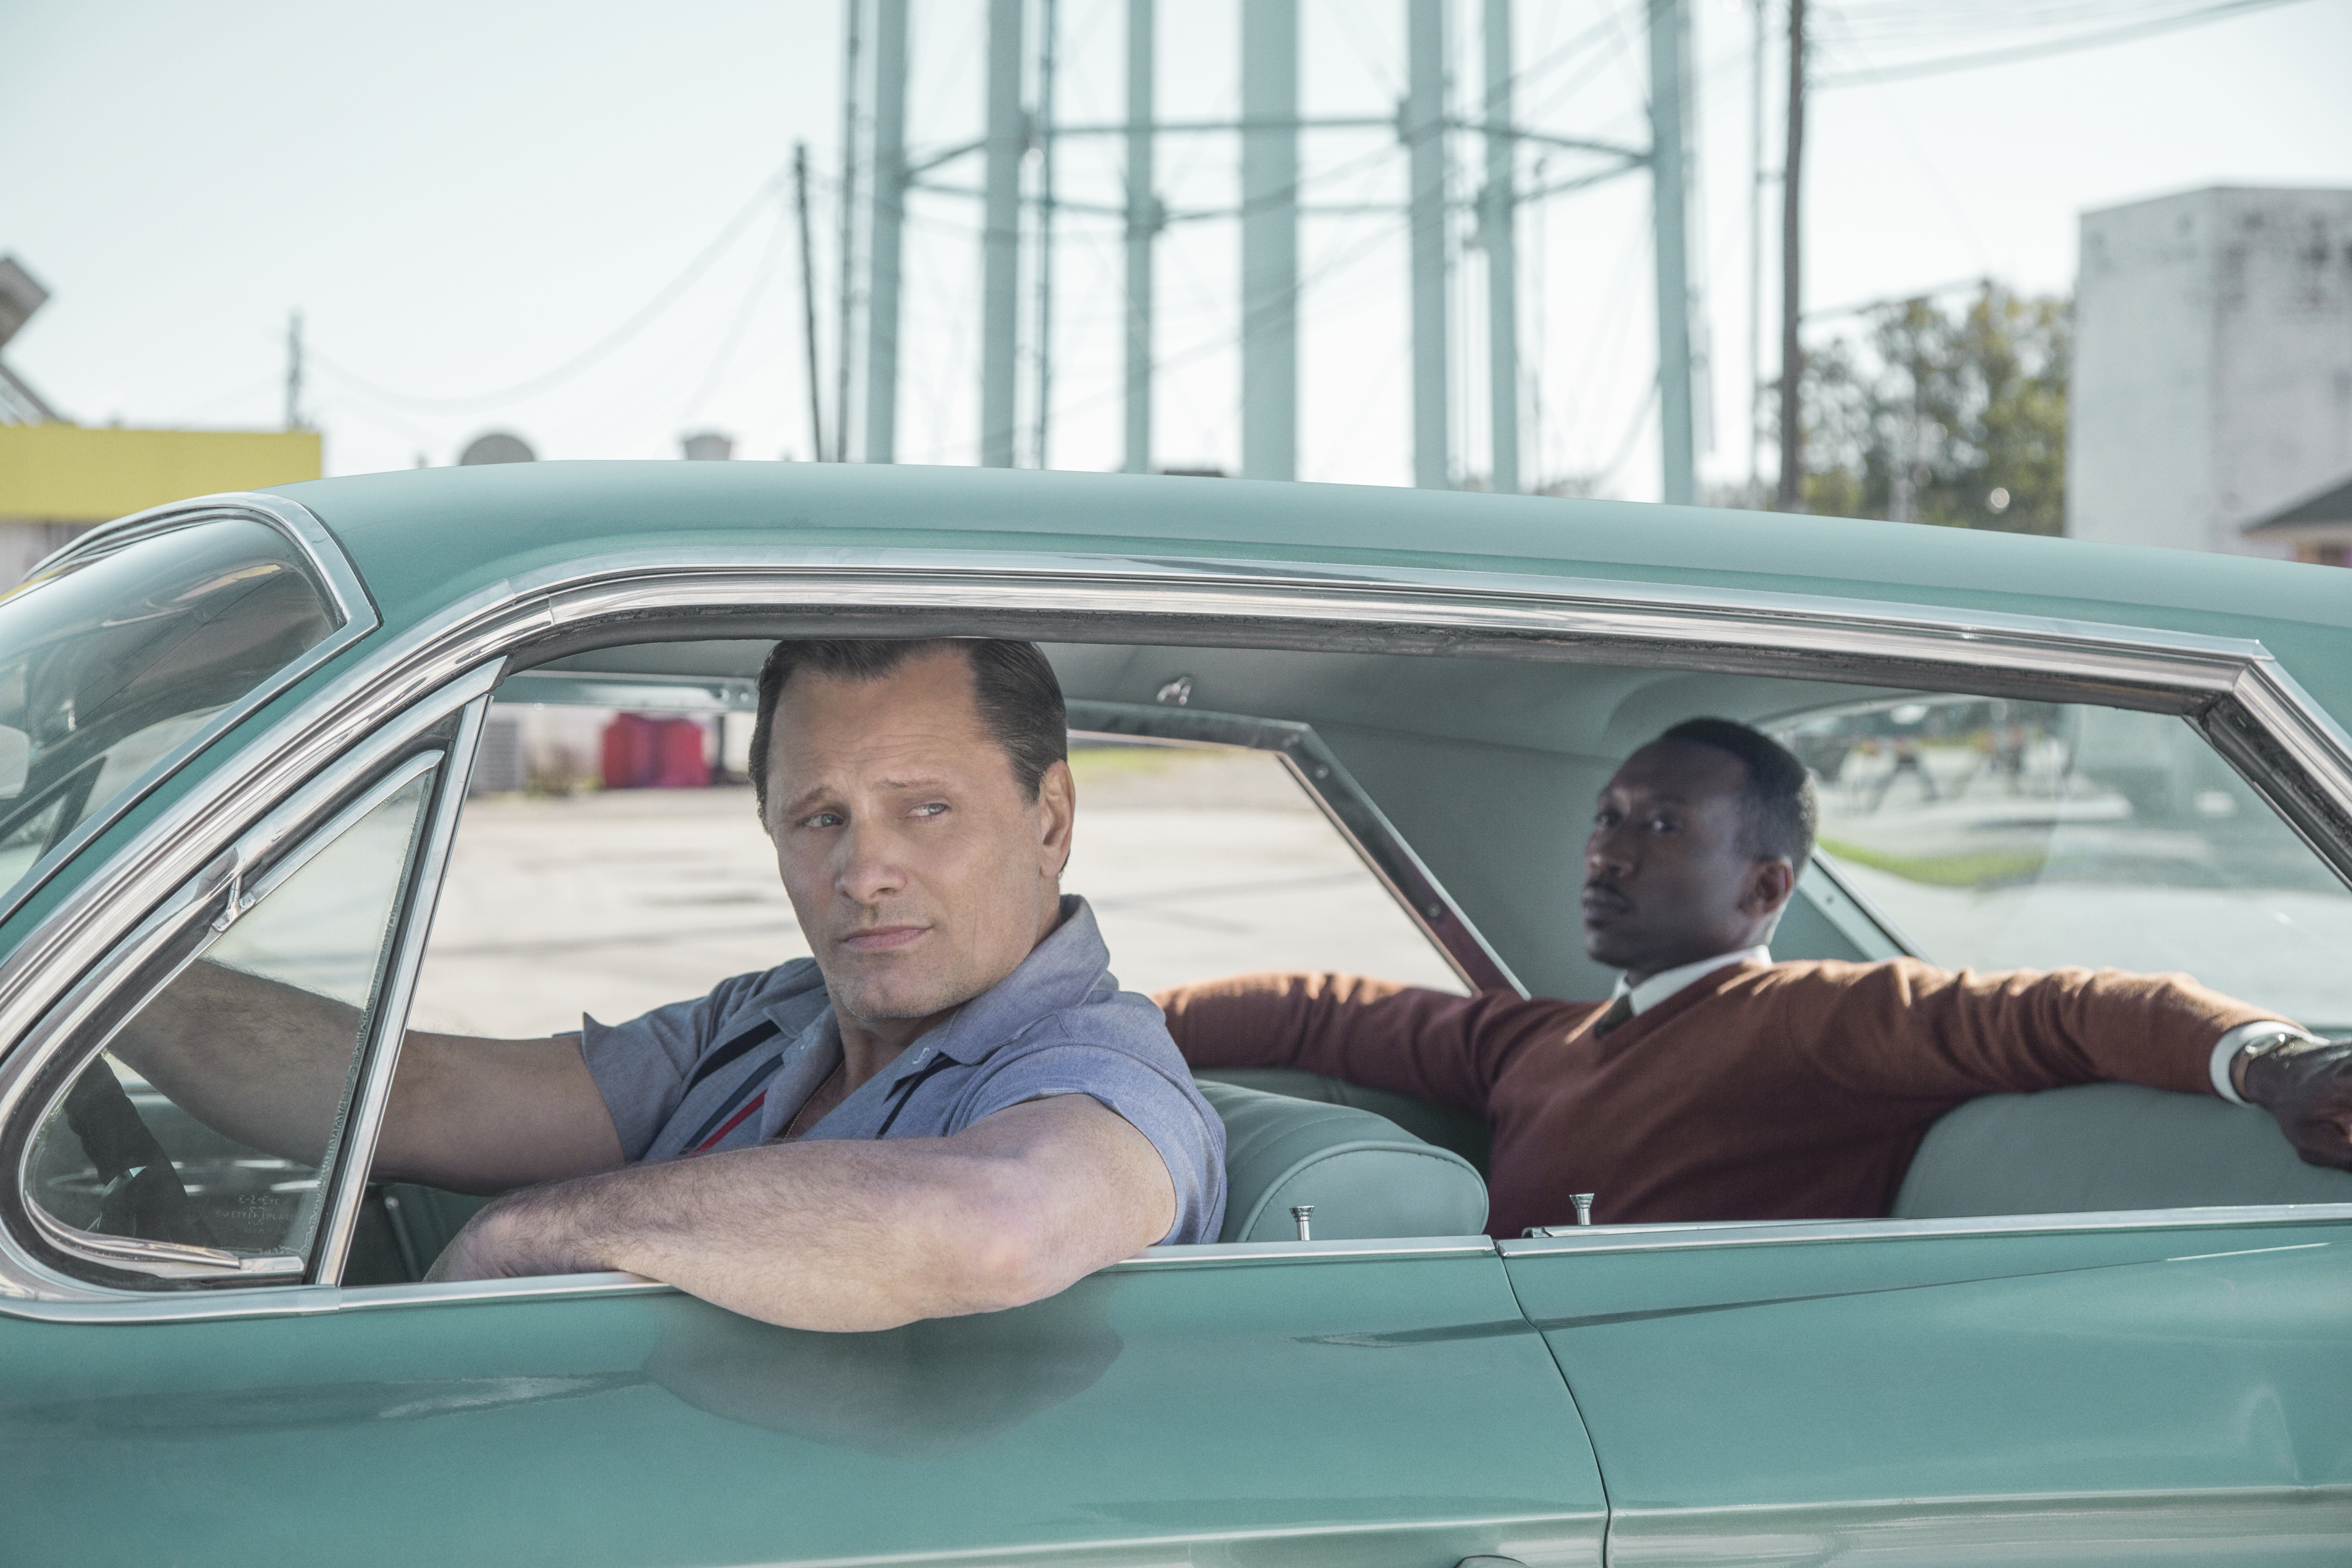 Viggo Mortensen as Tony Vallelonga and Mahershala Ali as Dr. Donald Shirley in Green Book, directed by Peter Farrelly.